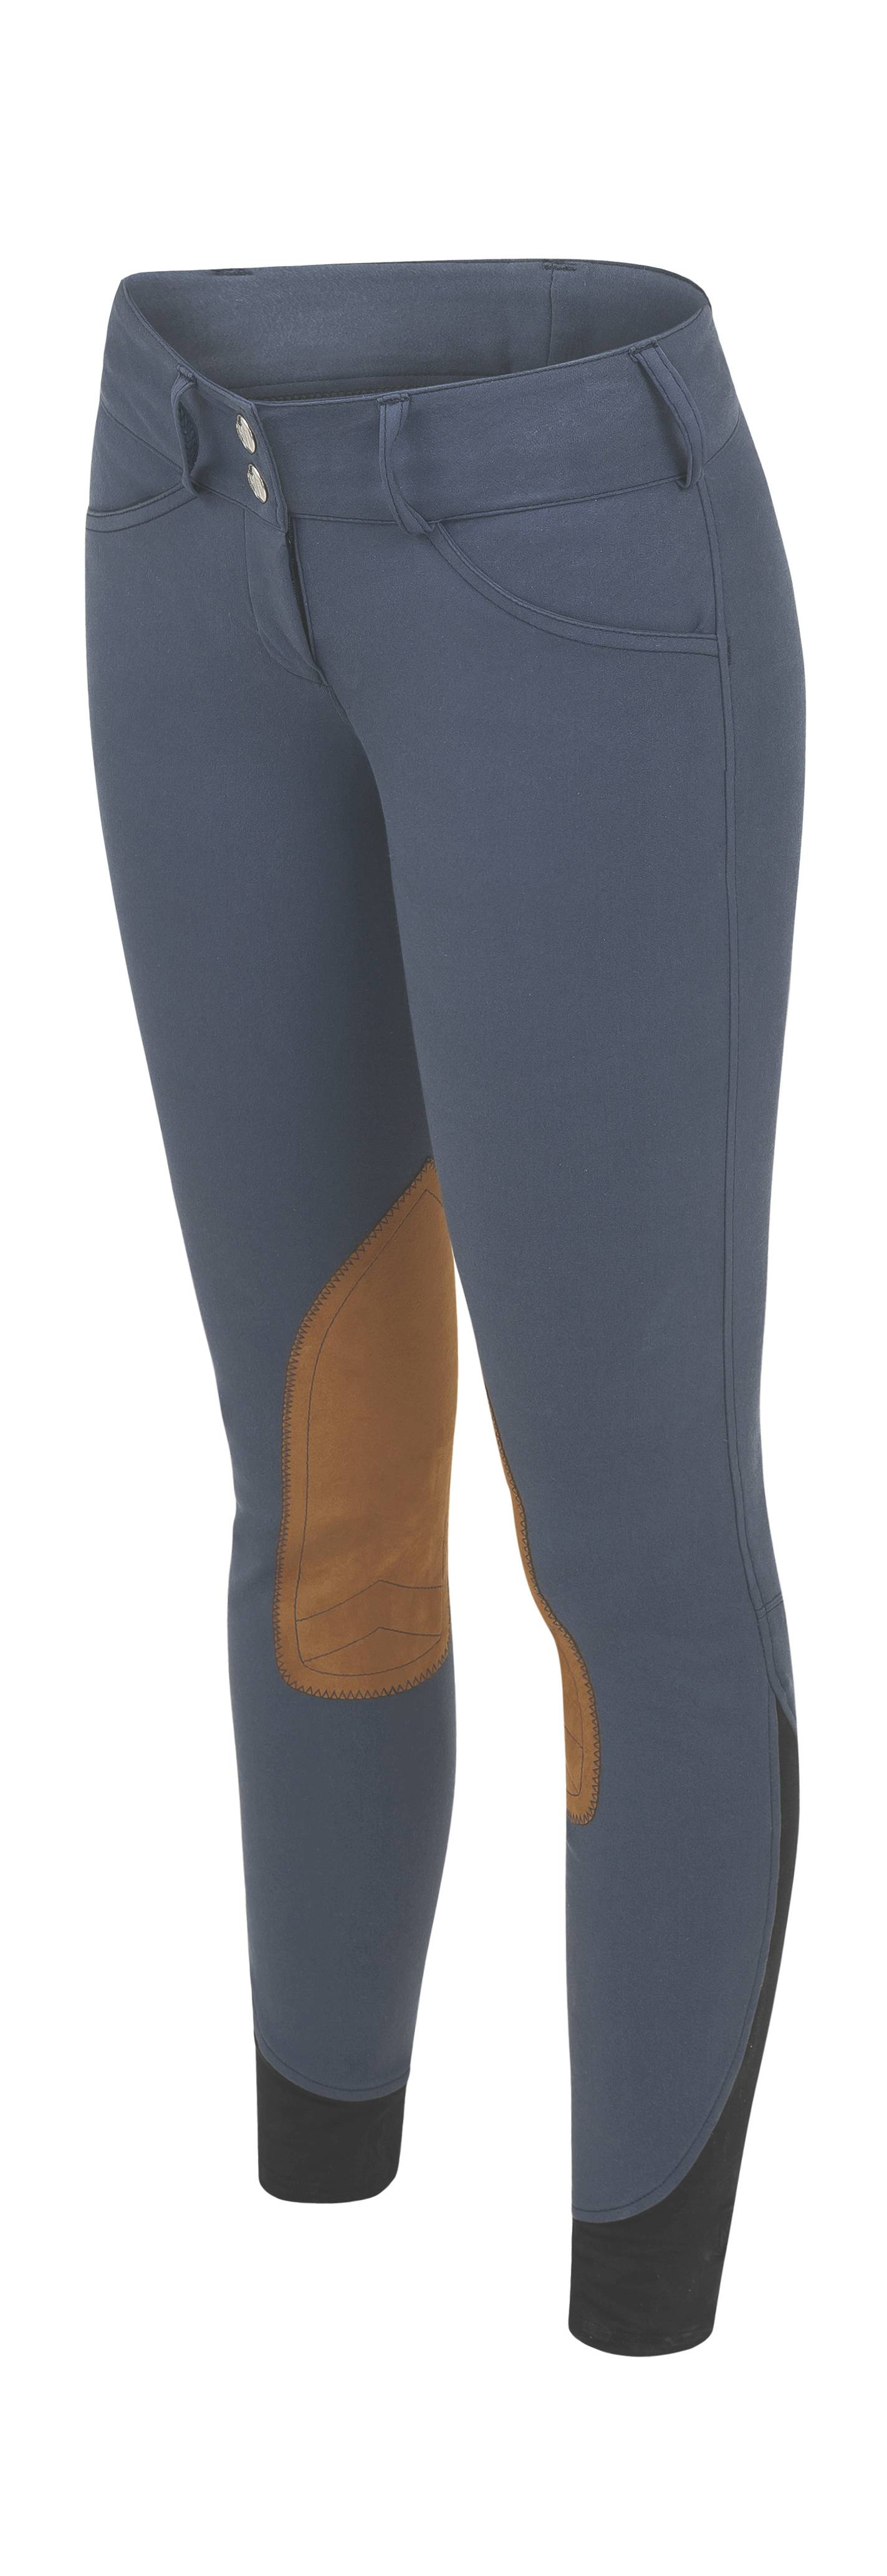 Tredstep Ladies Hunter Classic Knee Patch Breech